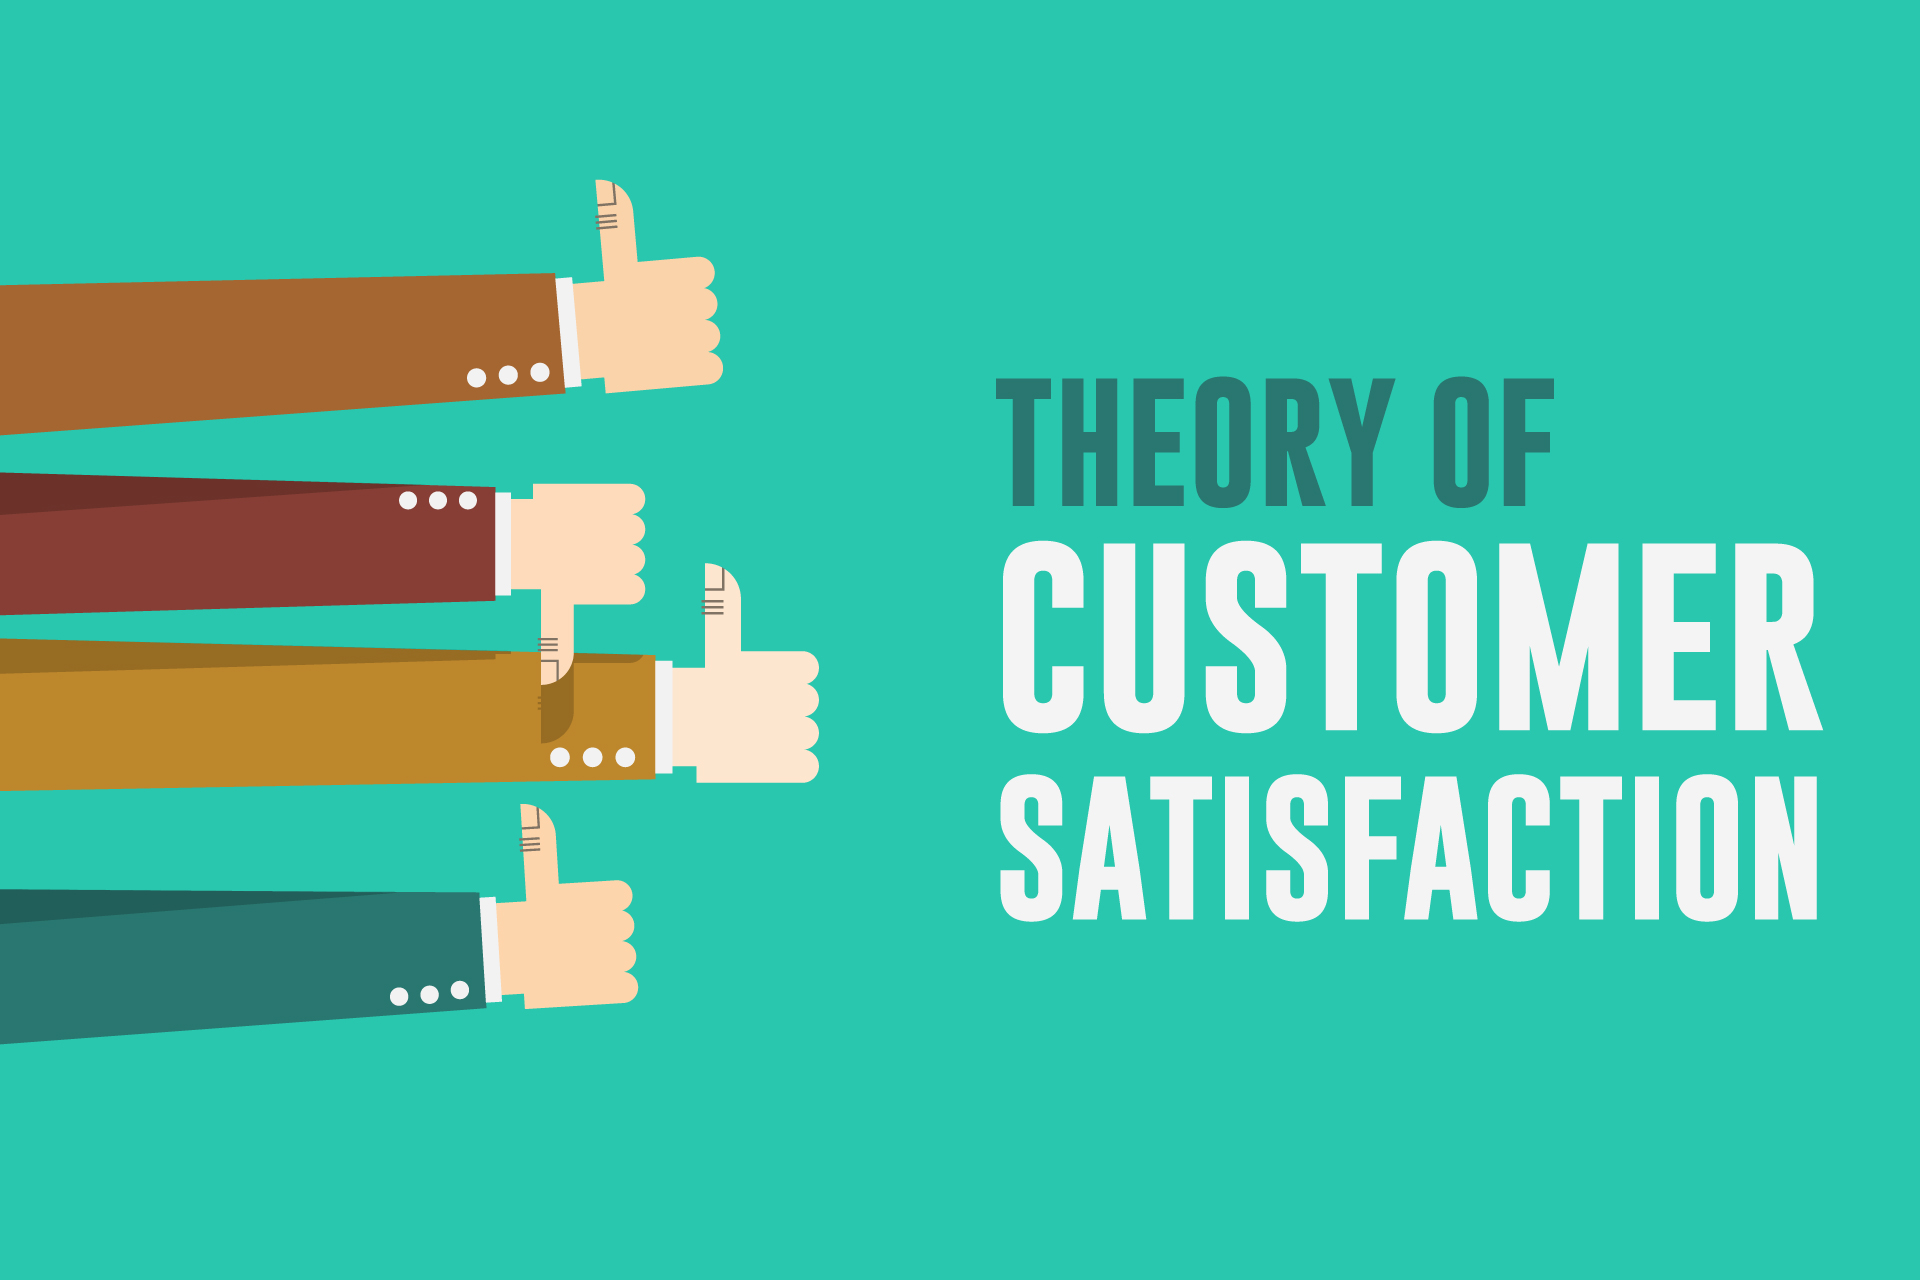 Theory of Customer Satisfaction